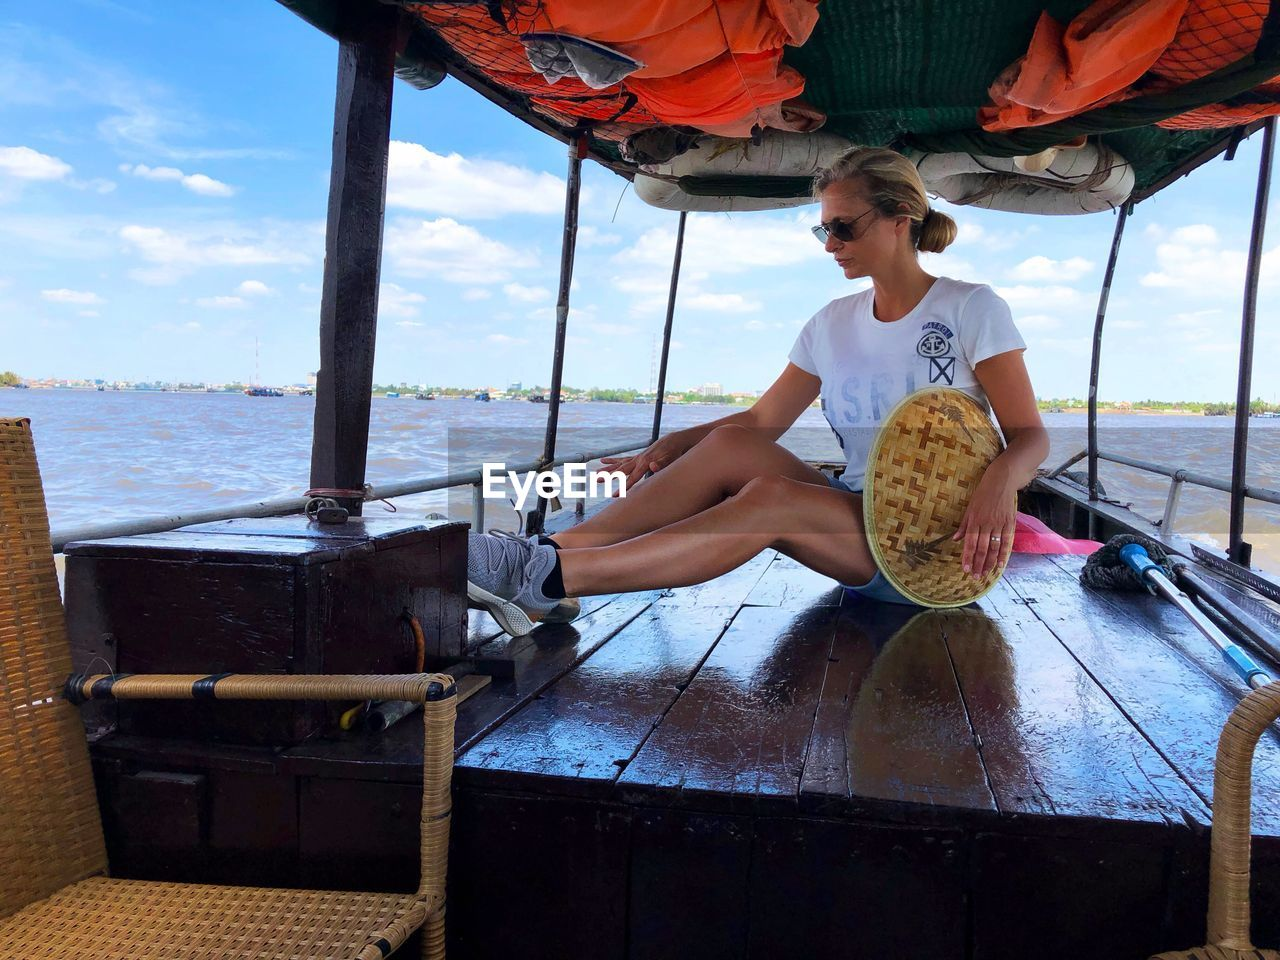 real people, leisure activity, sitting, lifestyles, water, one person, day, women, child, young women, nature, casual clothing, childhood, young adult, sky, food and drink, nautical vessel, outdoors